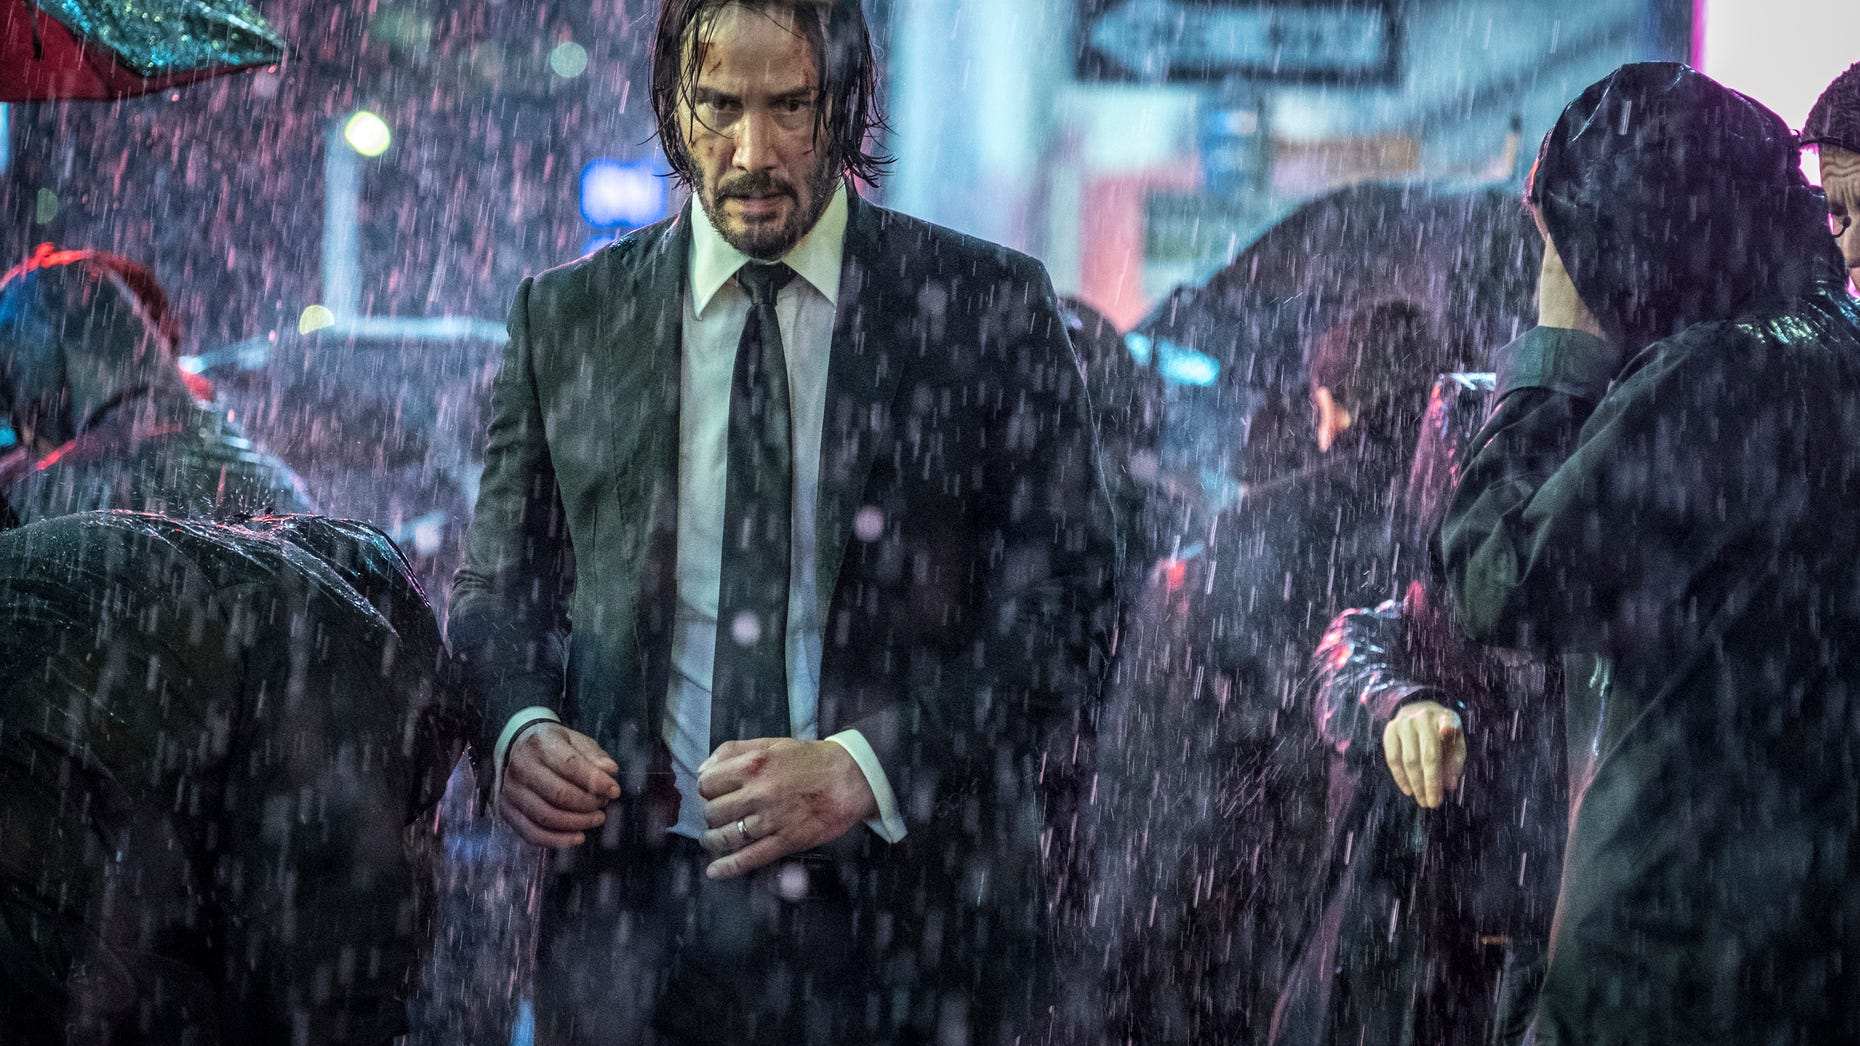 John Wick 4' is coming, it won't be a happy ending for Keanu Reeves